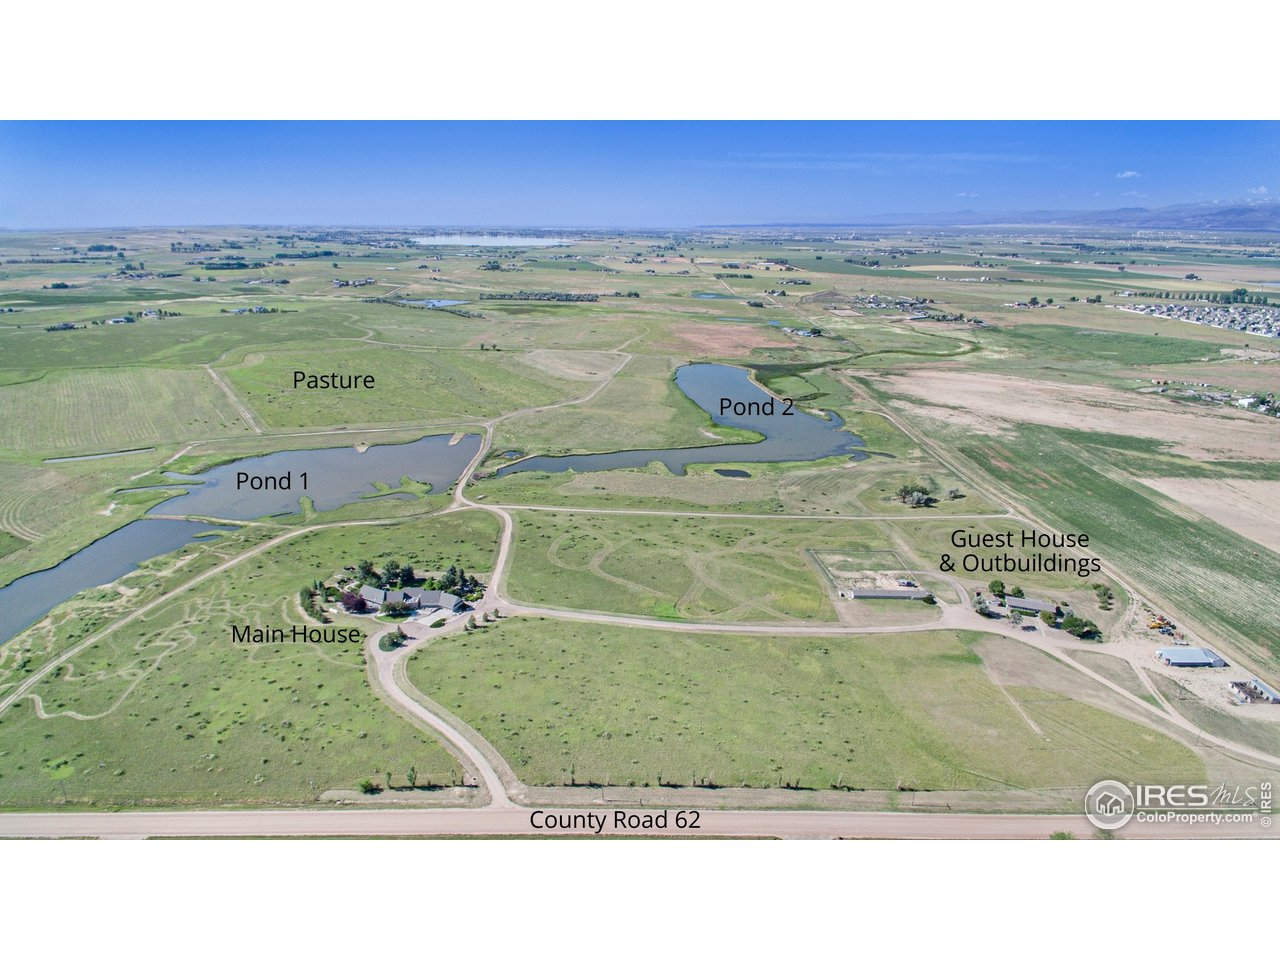 2 Ponds Located on the Property. Totally 23 Acres